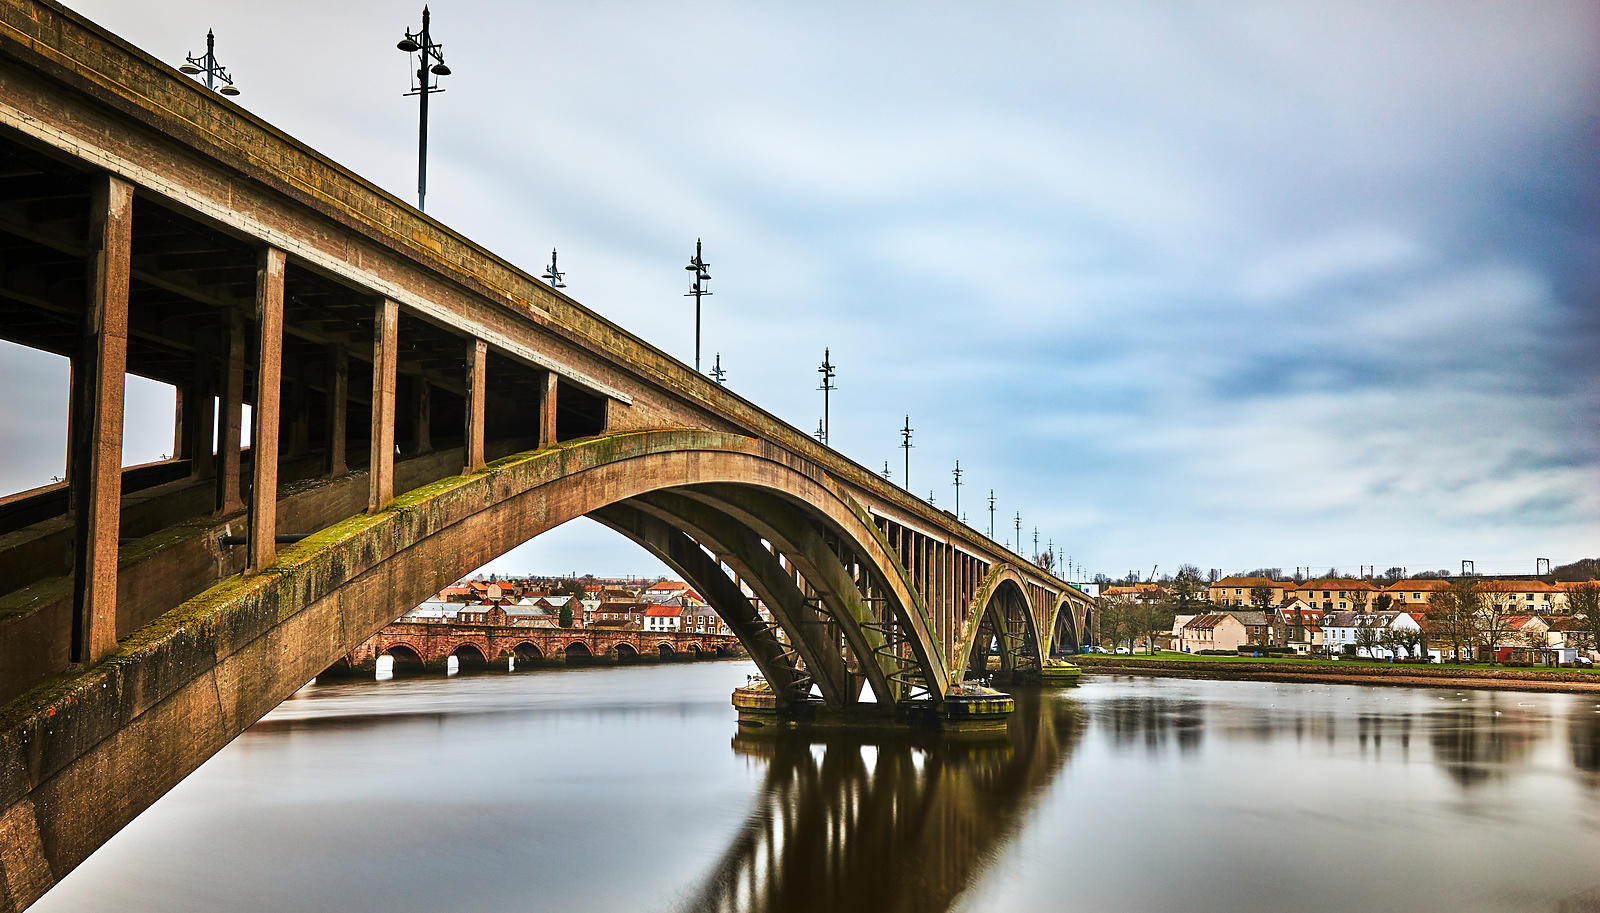 Wooden arched bridge over the river Tweed against a cloudy sky